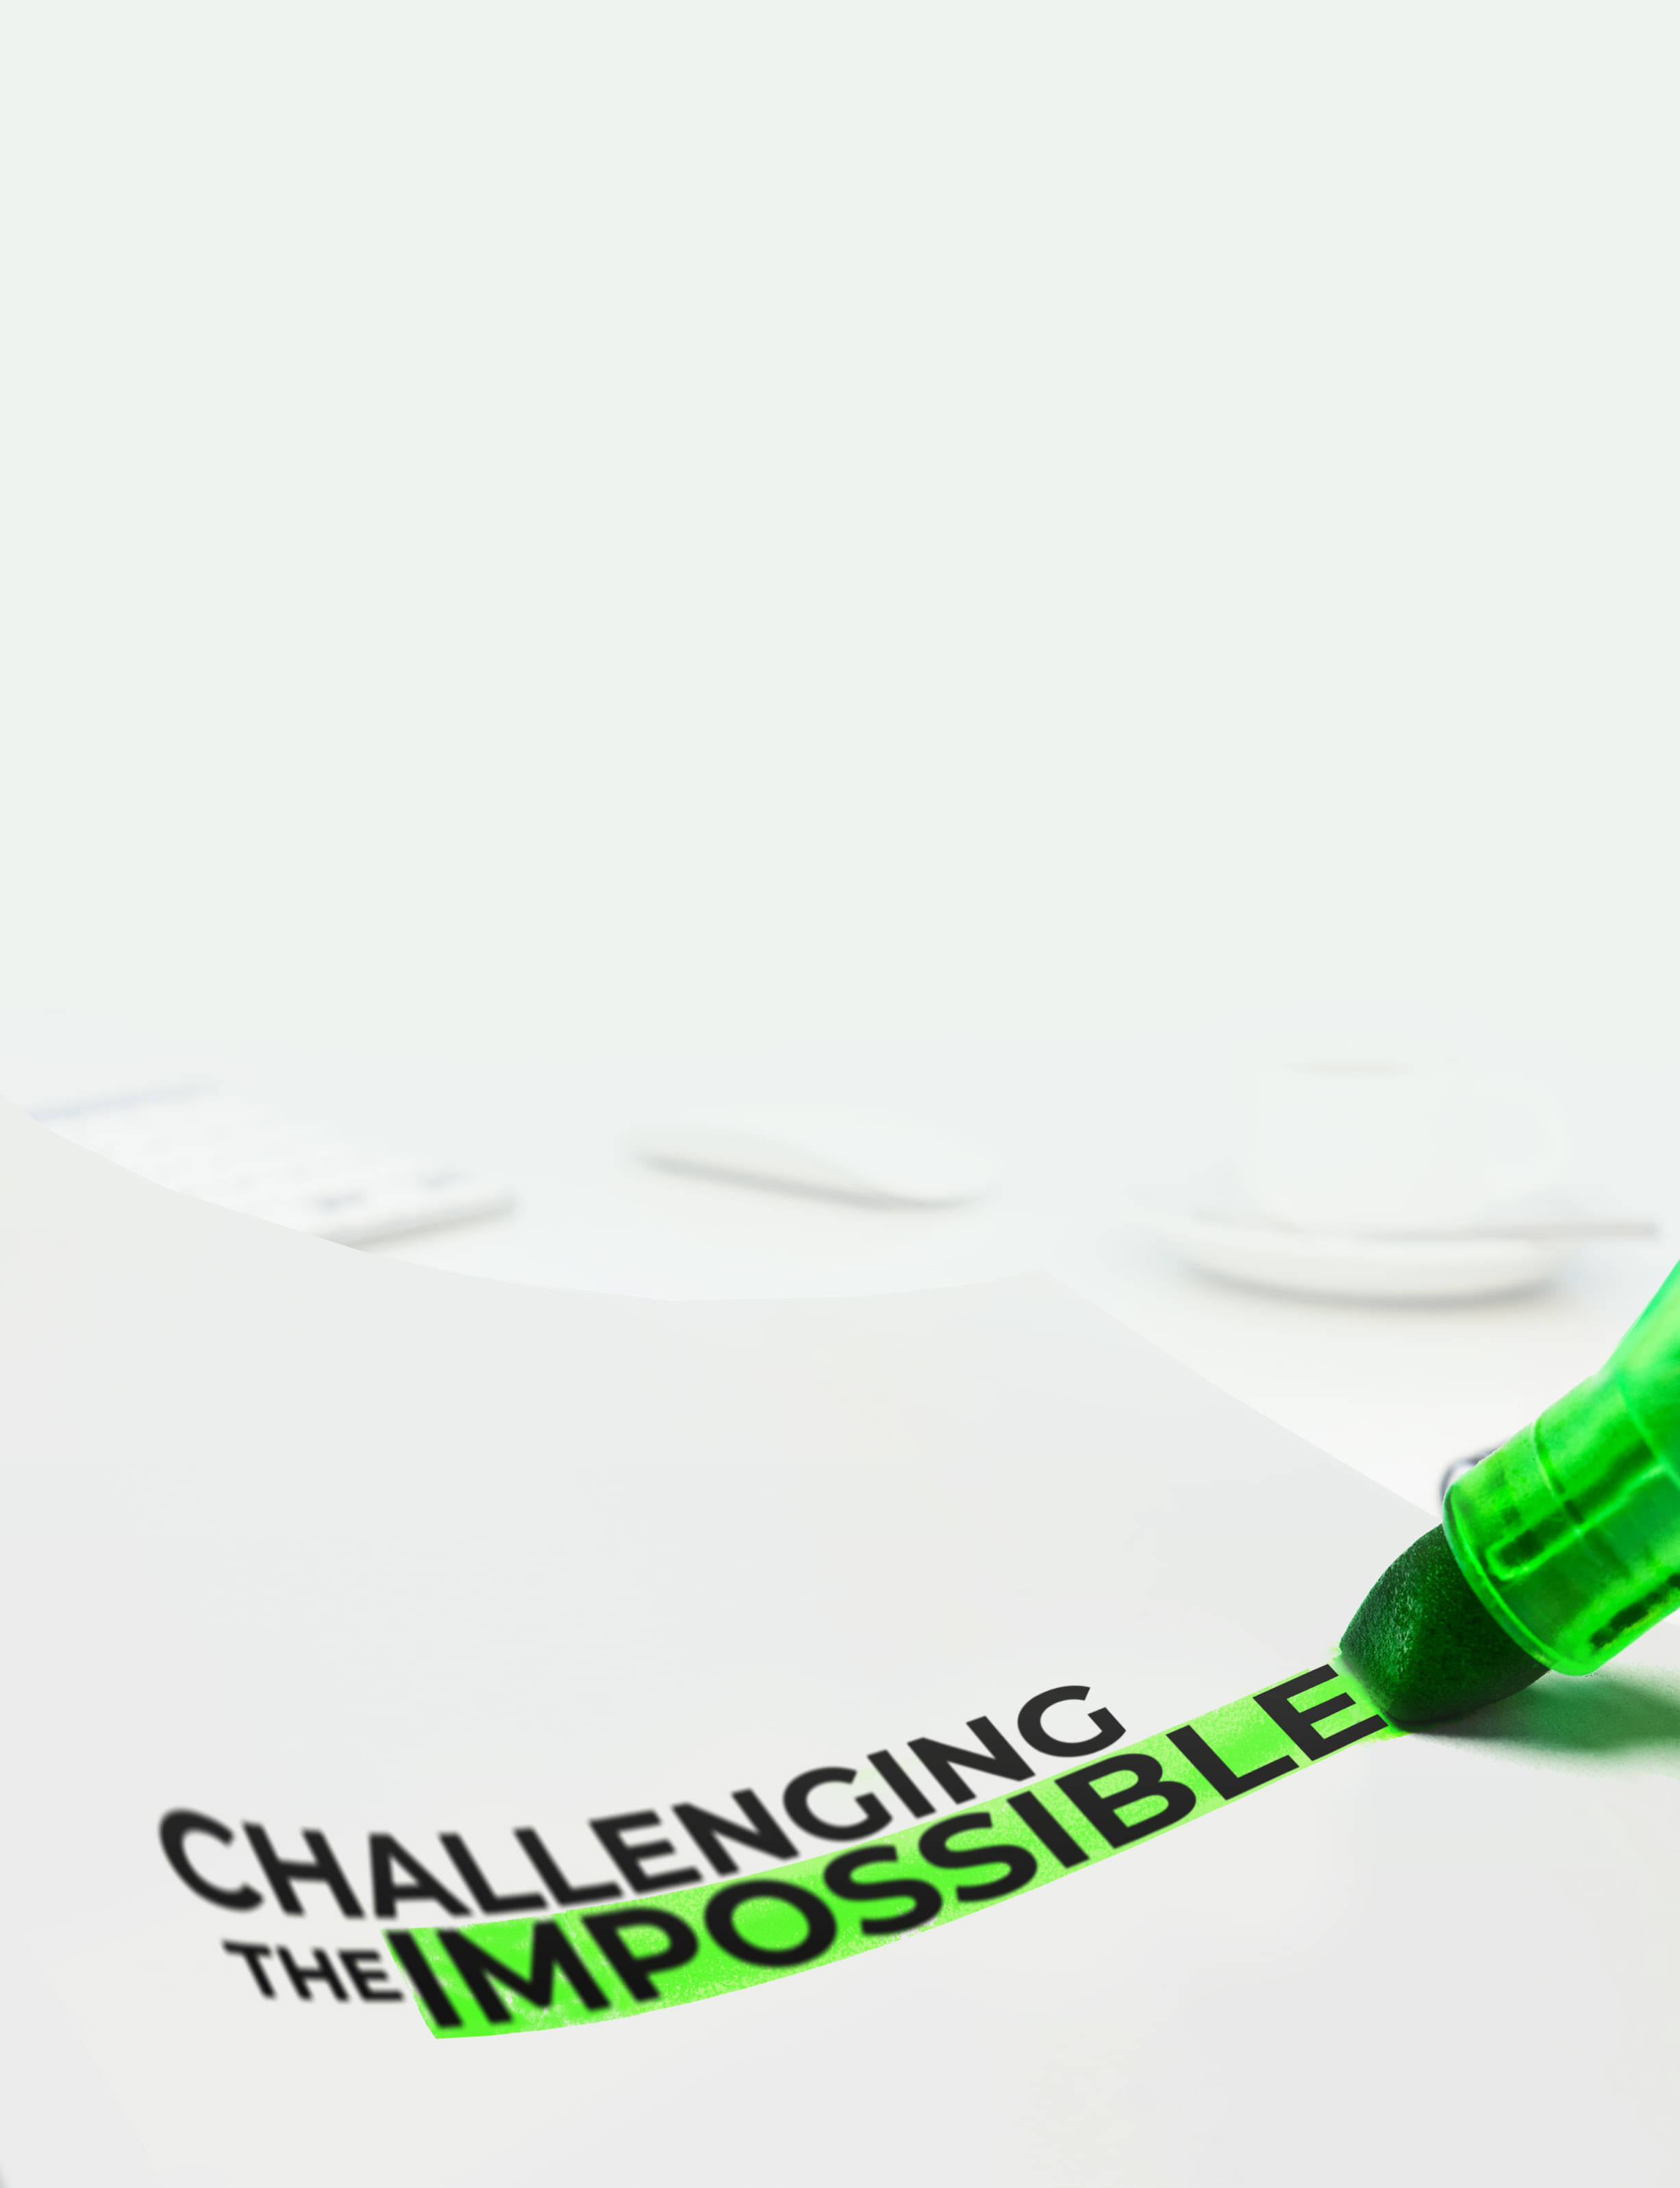 Challenging The Impossible